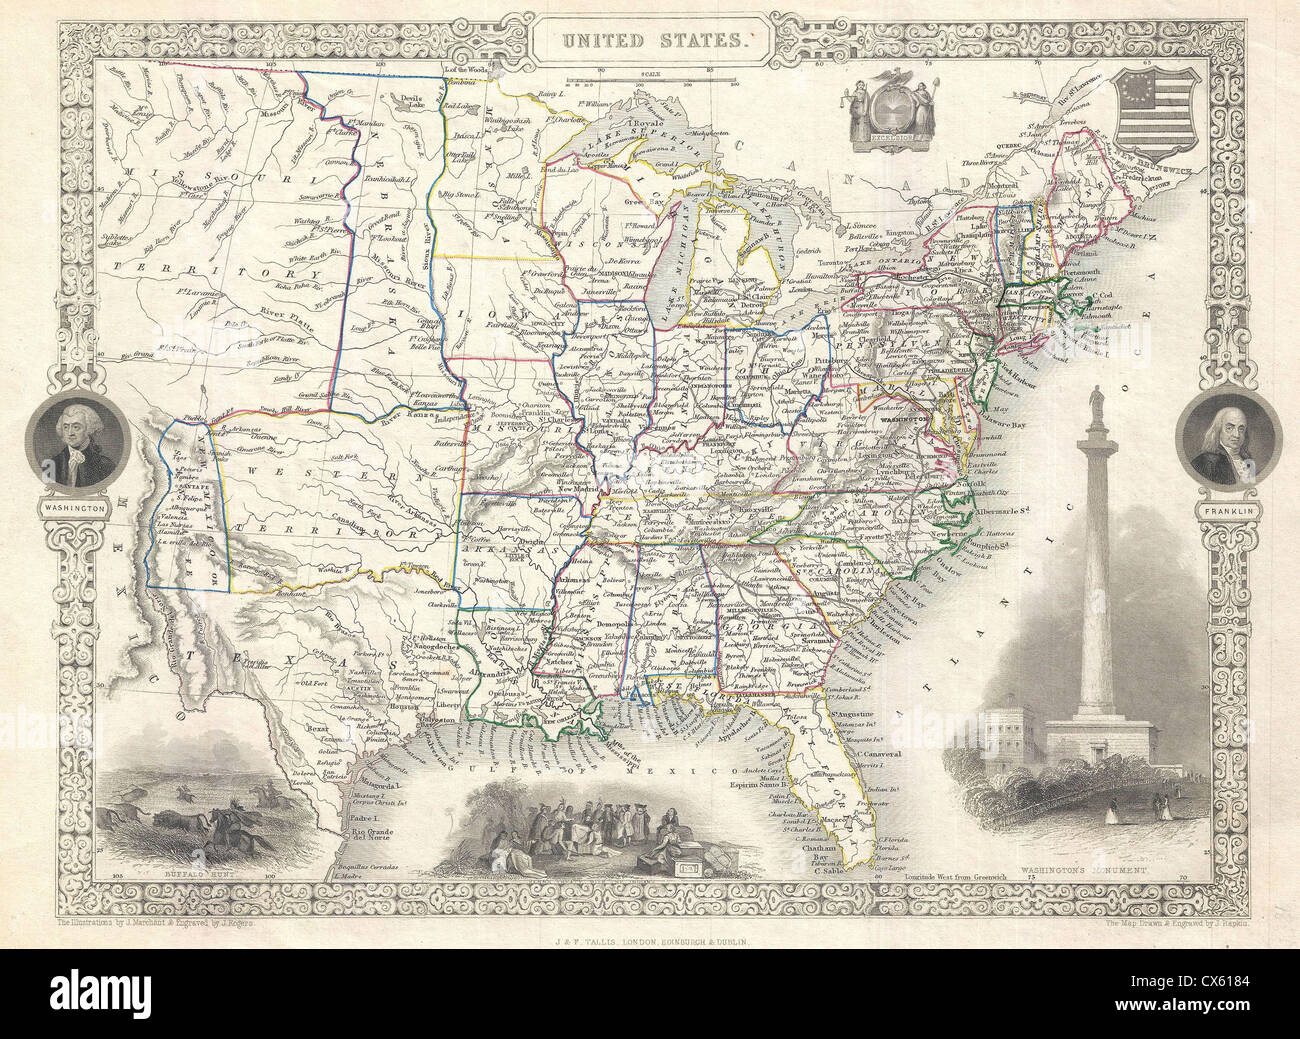 1851 Tallis and Rapkin Map of the United States - Stock Image